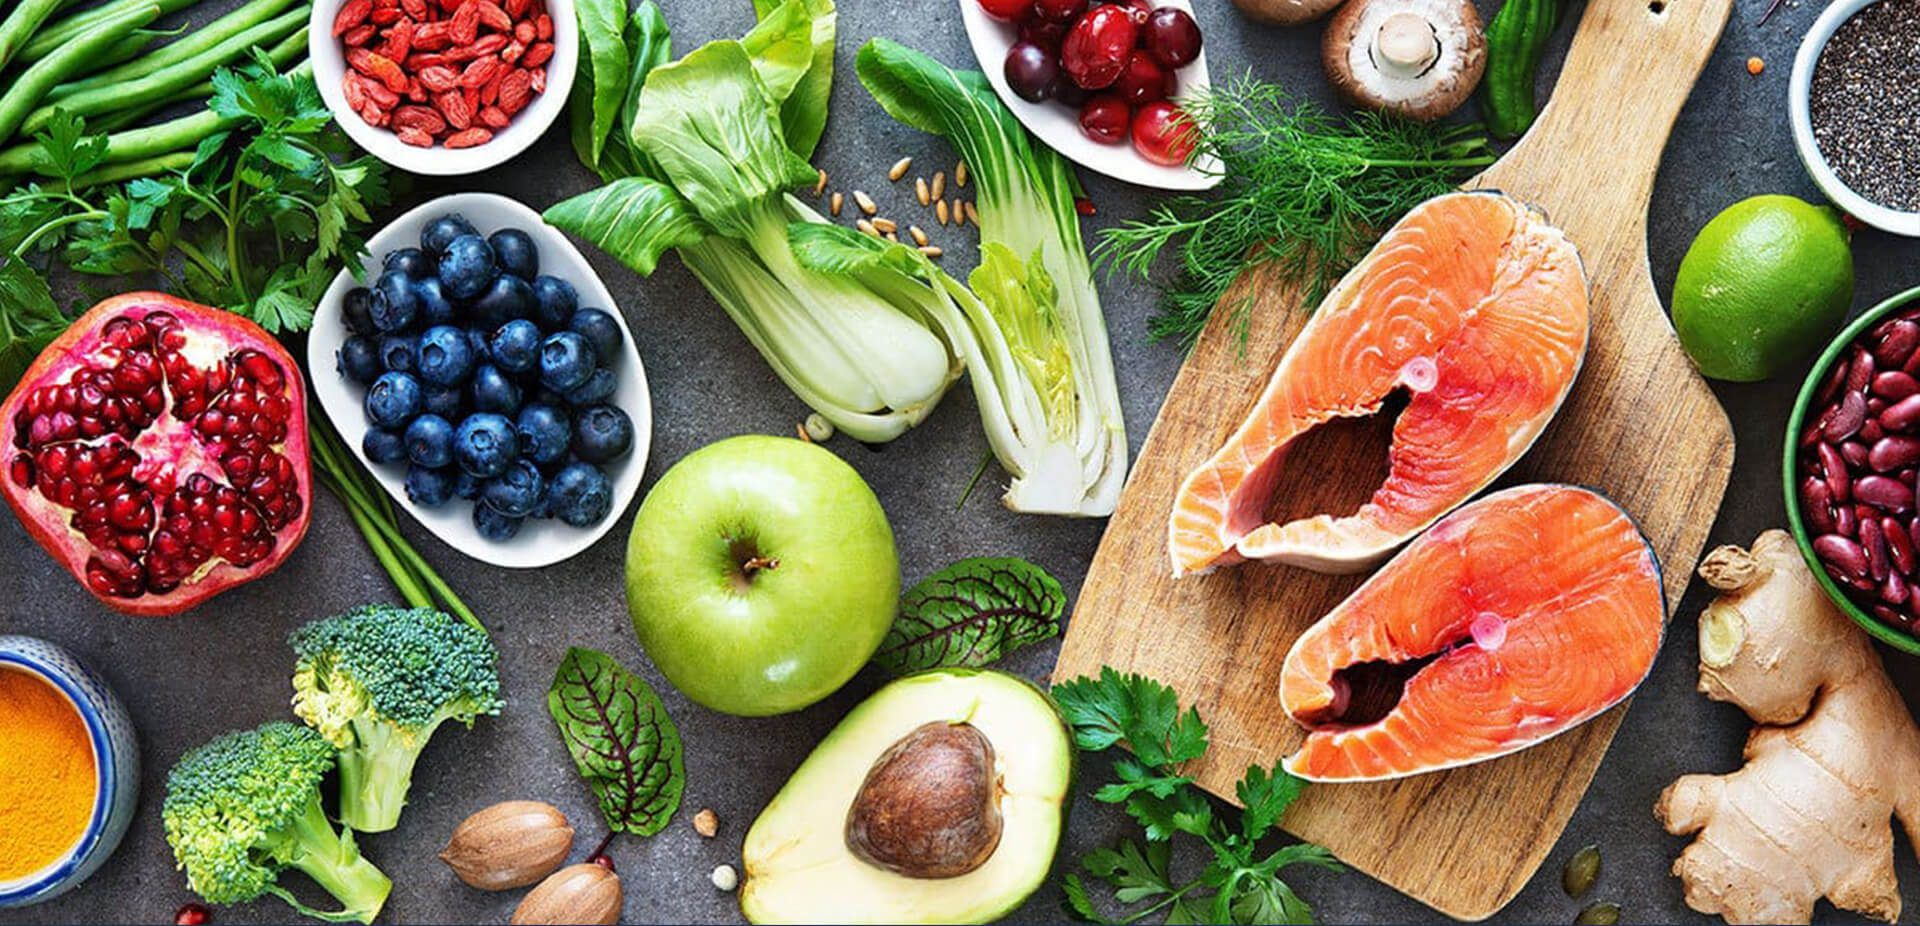 Foods to Boost Testosterone: Getting Healthier and Stronger Through Diet